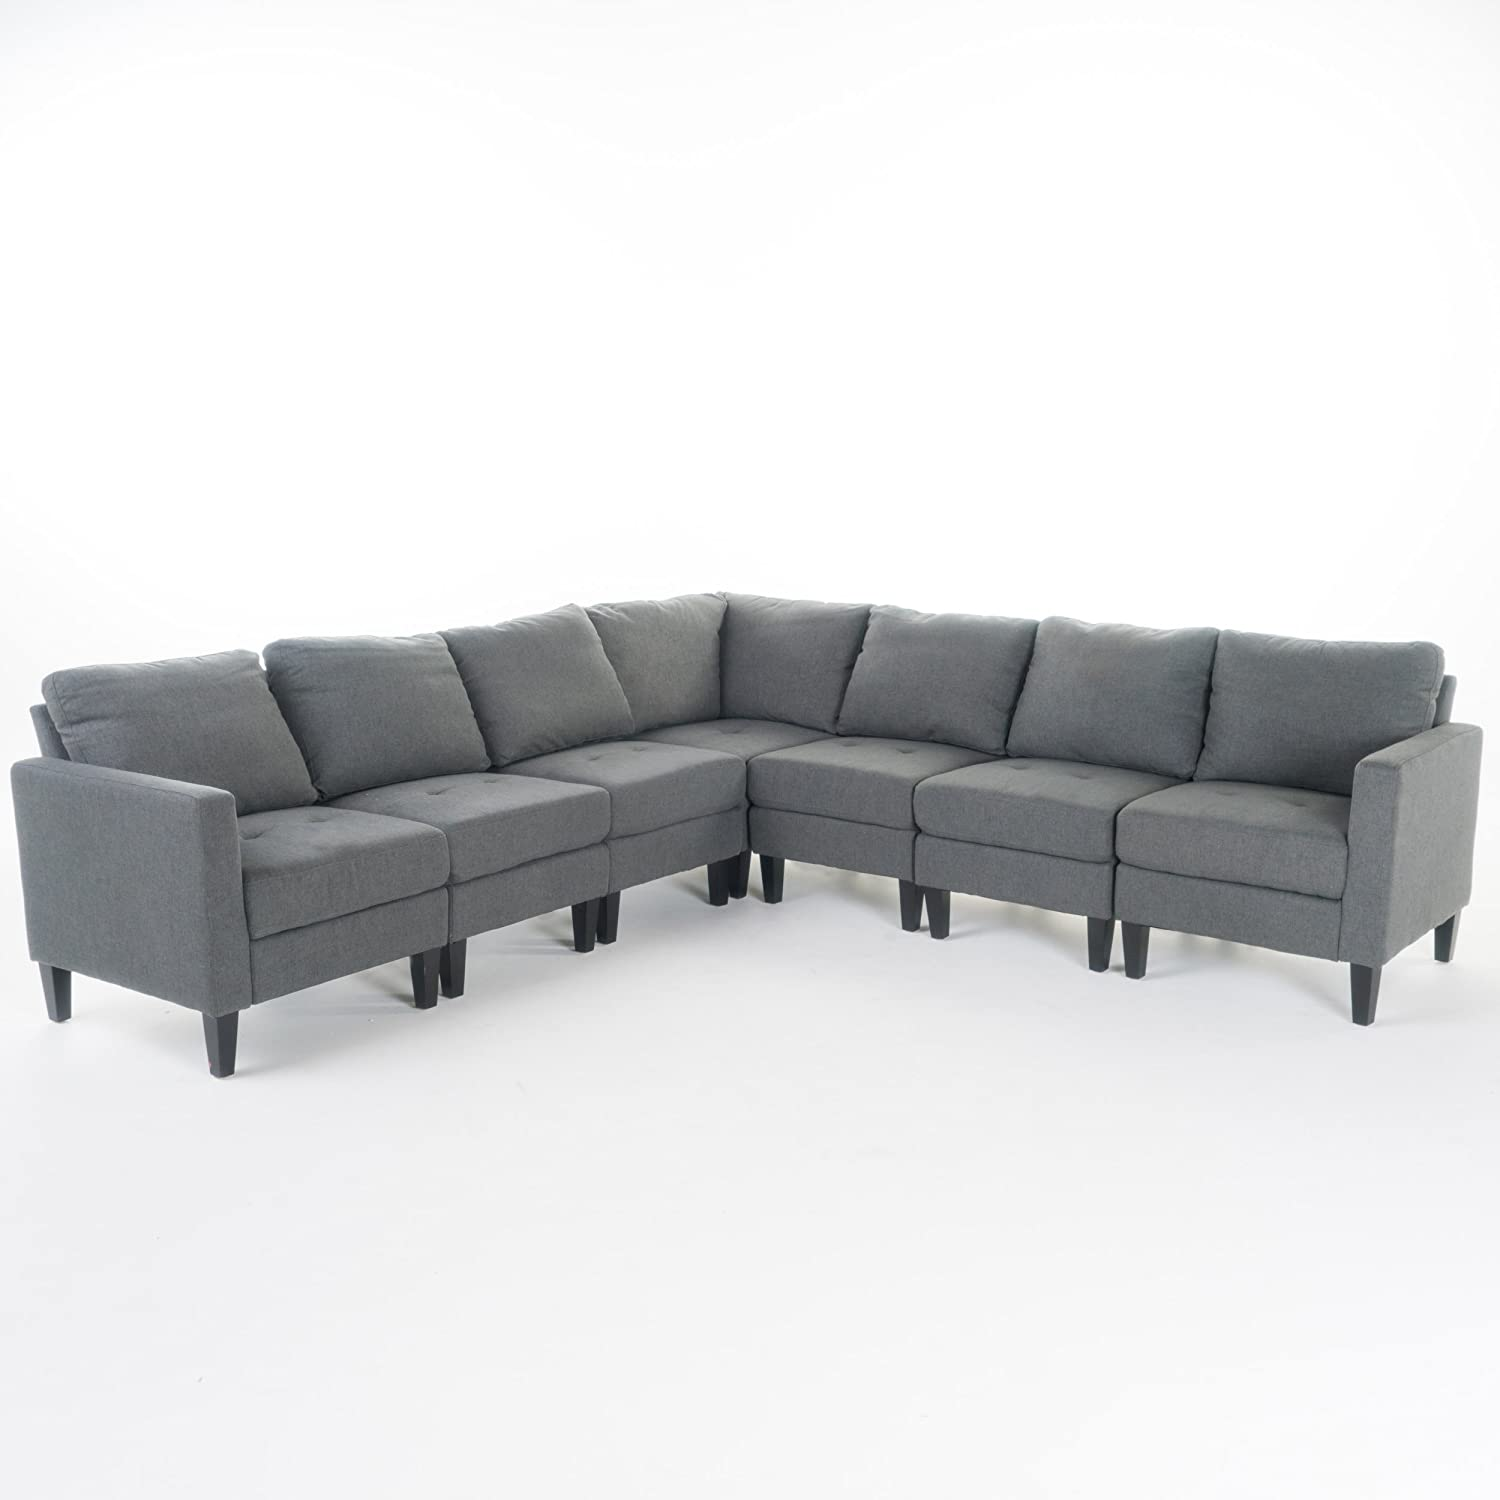 Carolina Versatile Daily bargain sale 7 Piece Fabric Dark Max 51% OFF Sectional Grey Couch